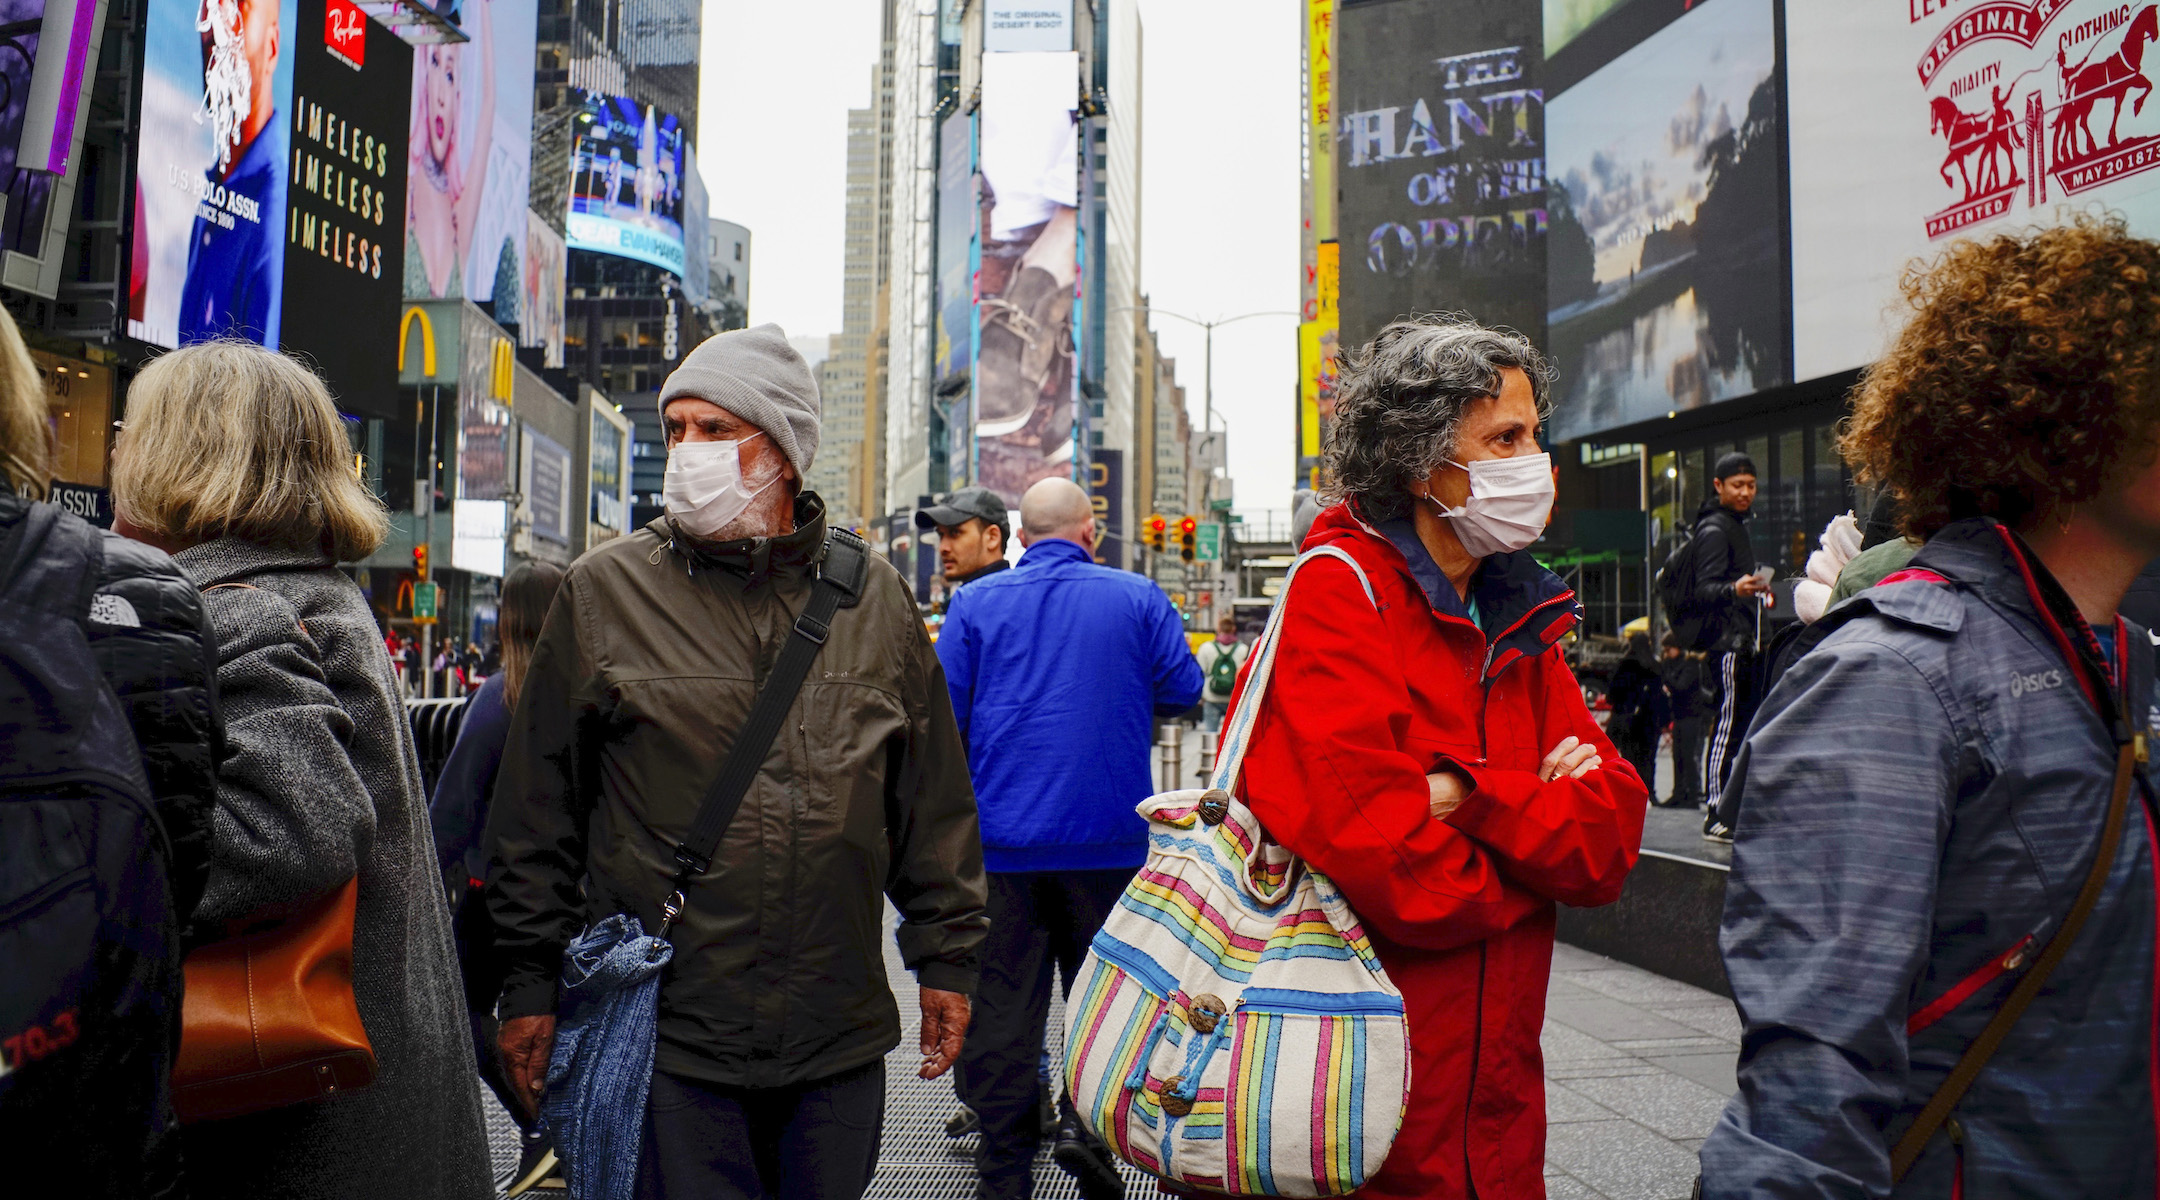 People wear face masks in Times Square in New York City, March 3, 2020, after the city confirmed cases of the rapidly spreading coronavirus. (Photo/JTA-Eduardo Munoz-VIEWpress via Getty Images)